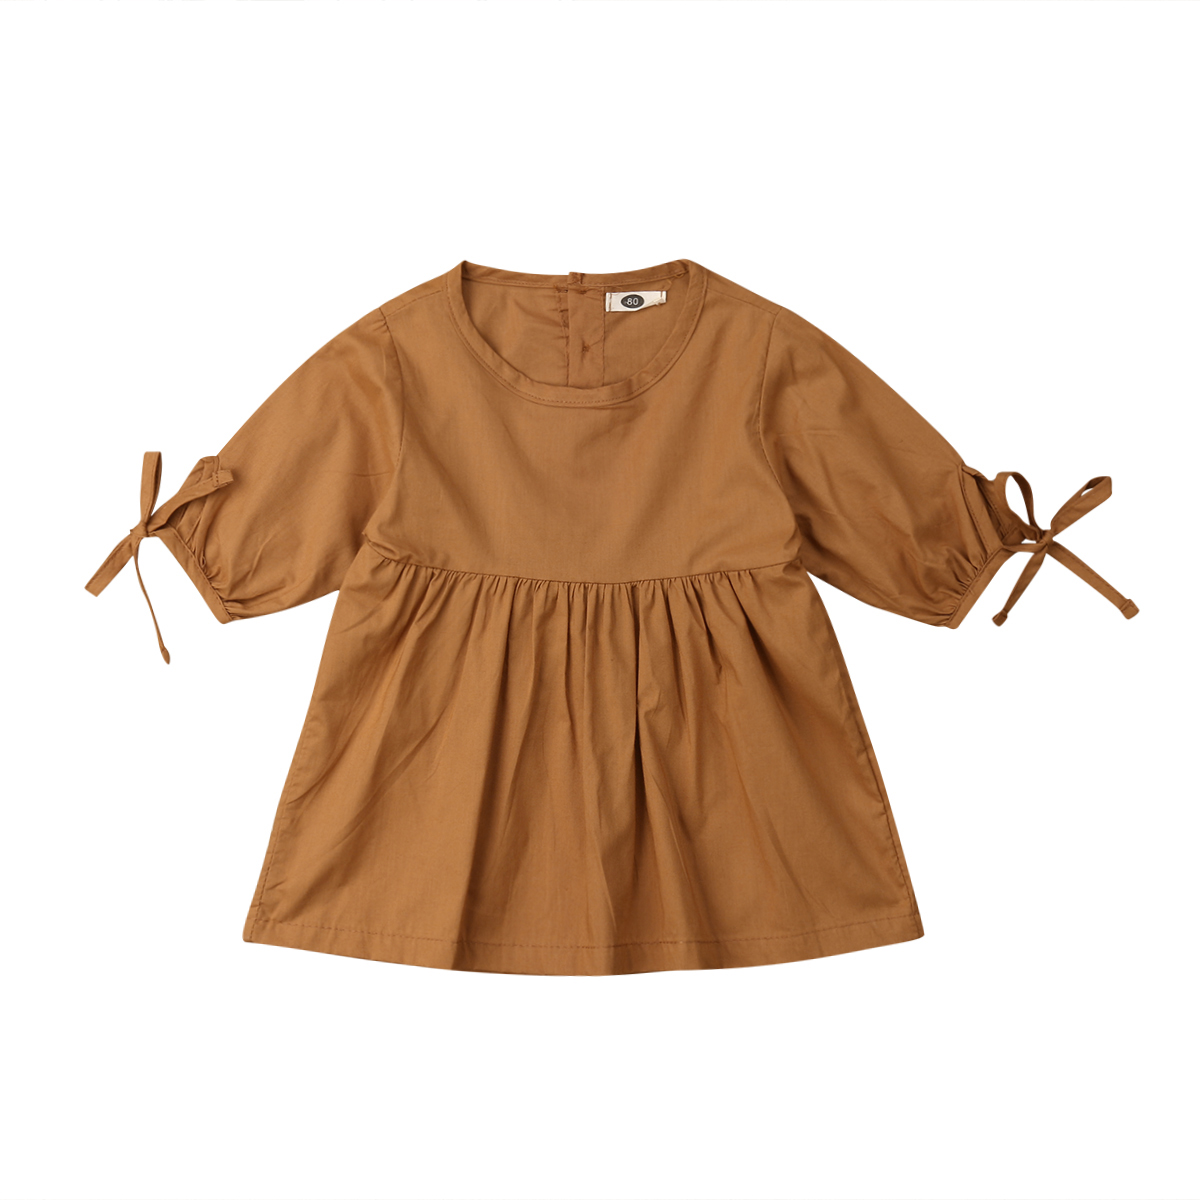 2019 Brand New Toddler Kids Baby Girls Solid Turmeric Dress Bowknot Long Sleeve Knee-Length A-Line Dress Brief Outfit 6M-4Y